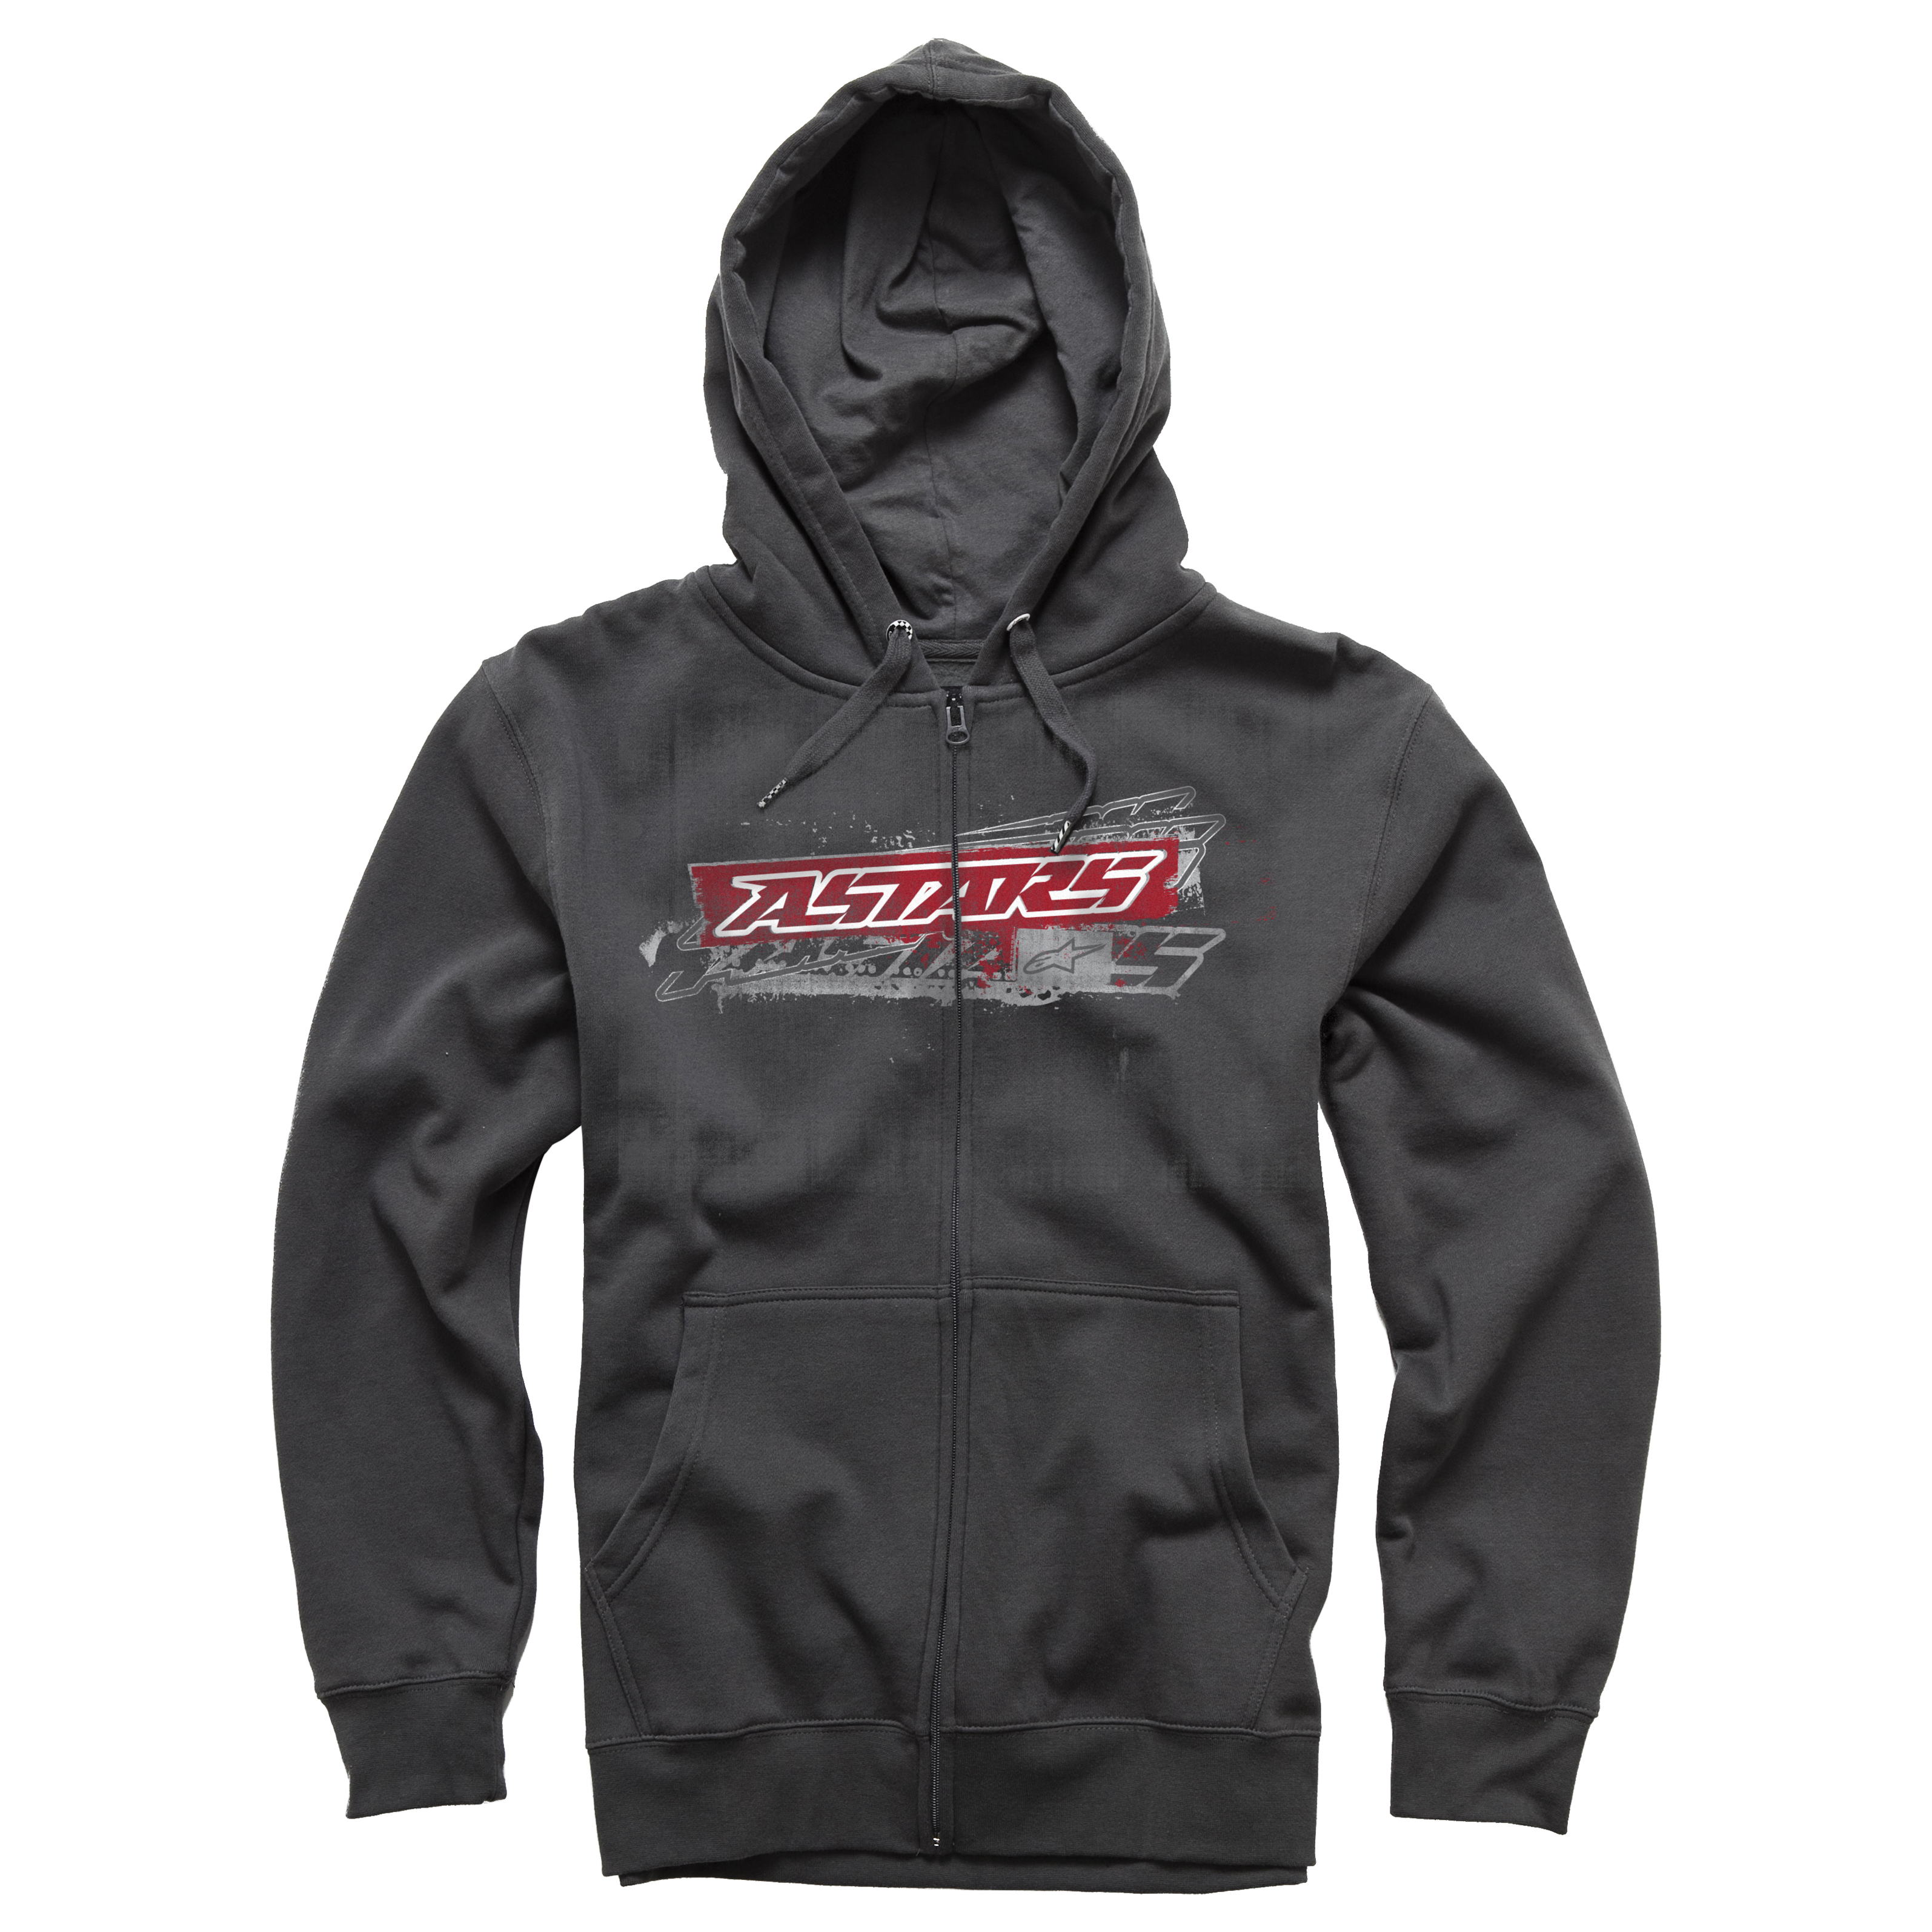 Alpinestar Alpinestars Quickie Zip Fleece - Charcoal